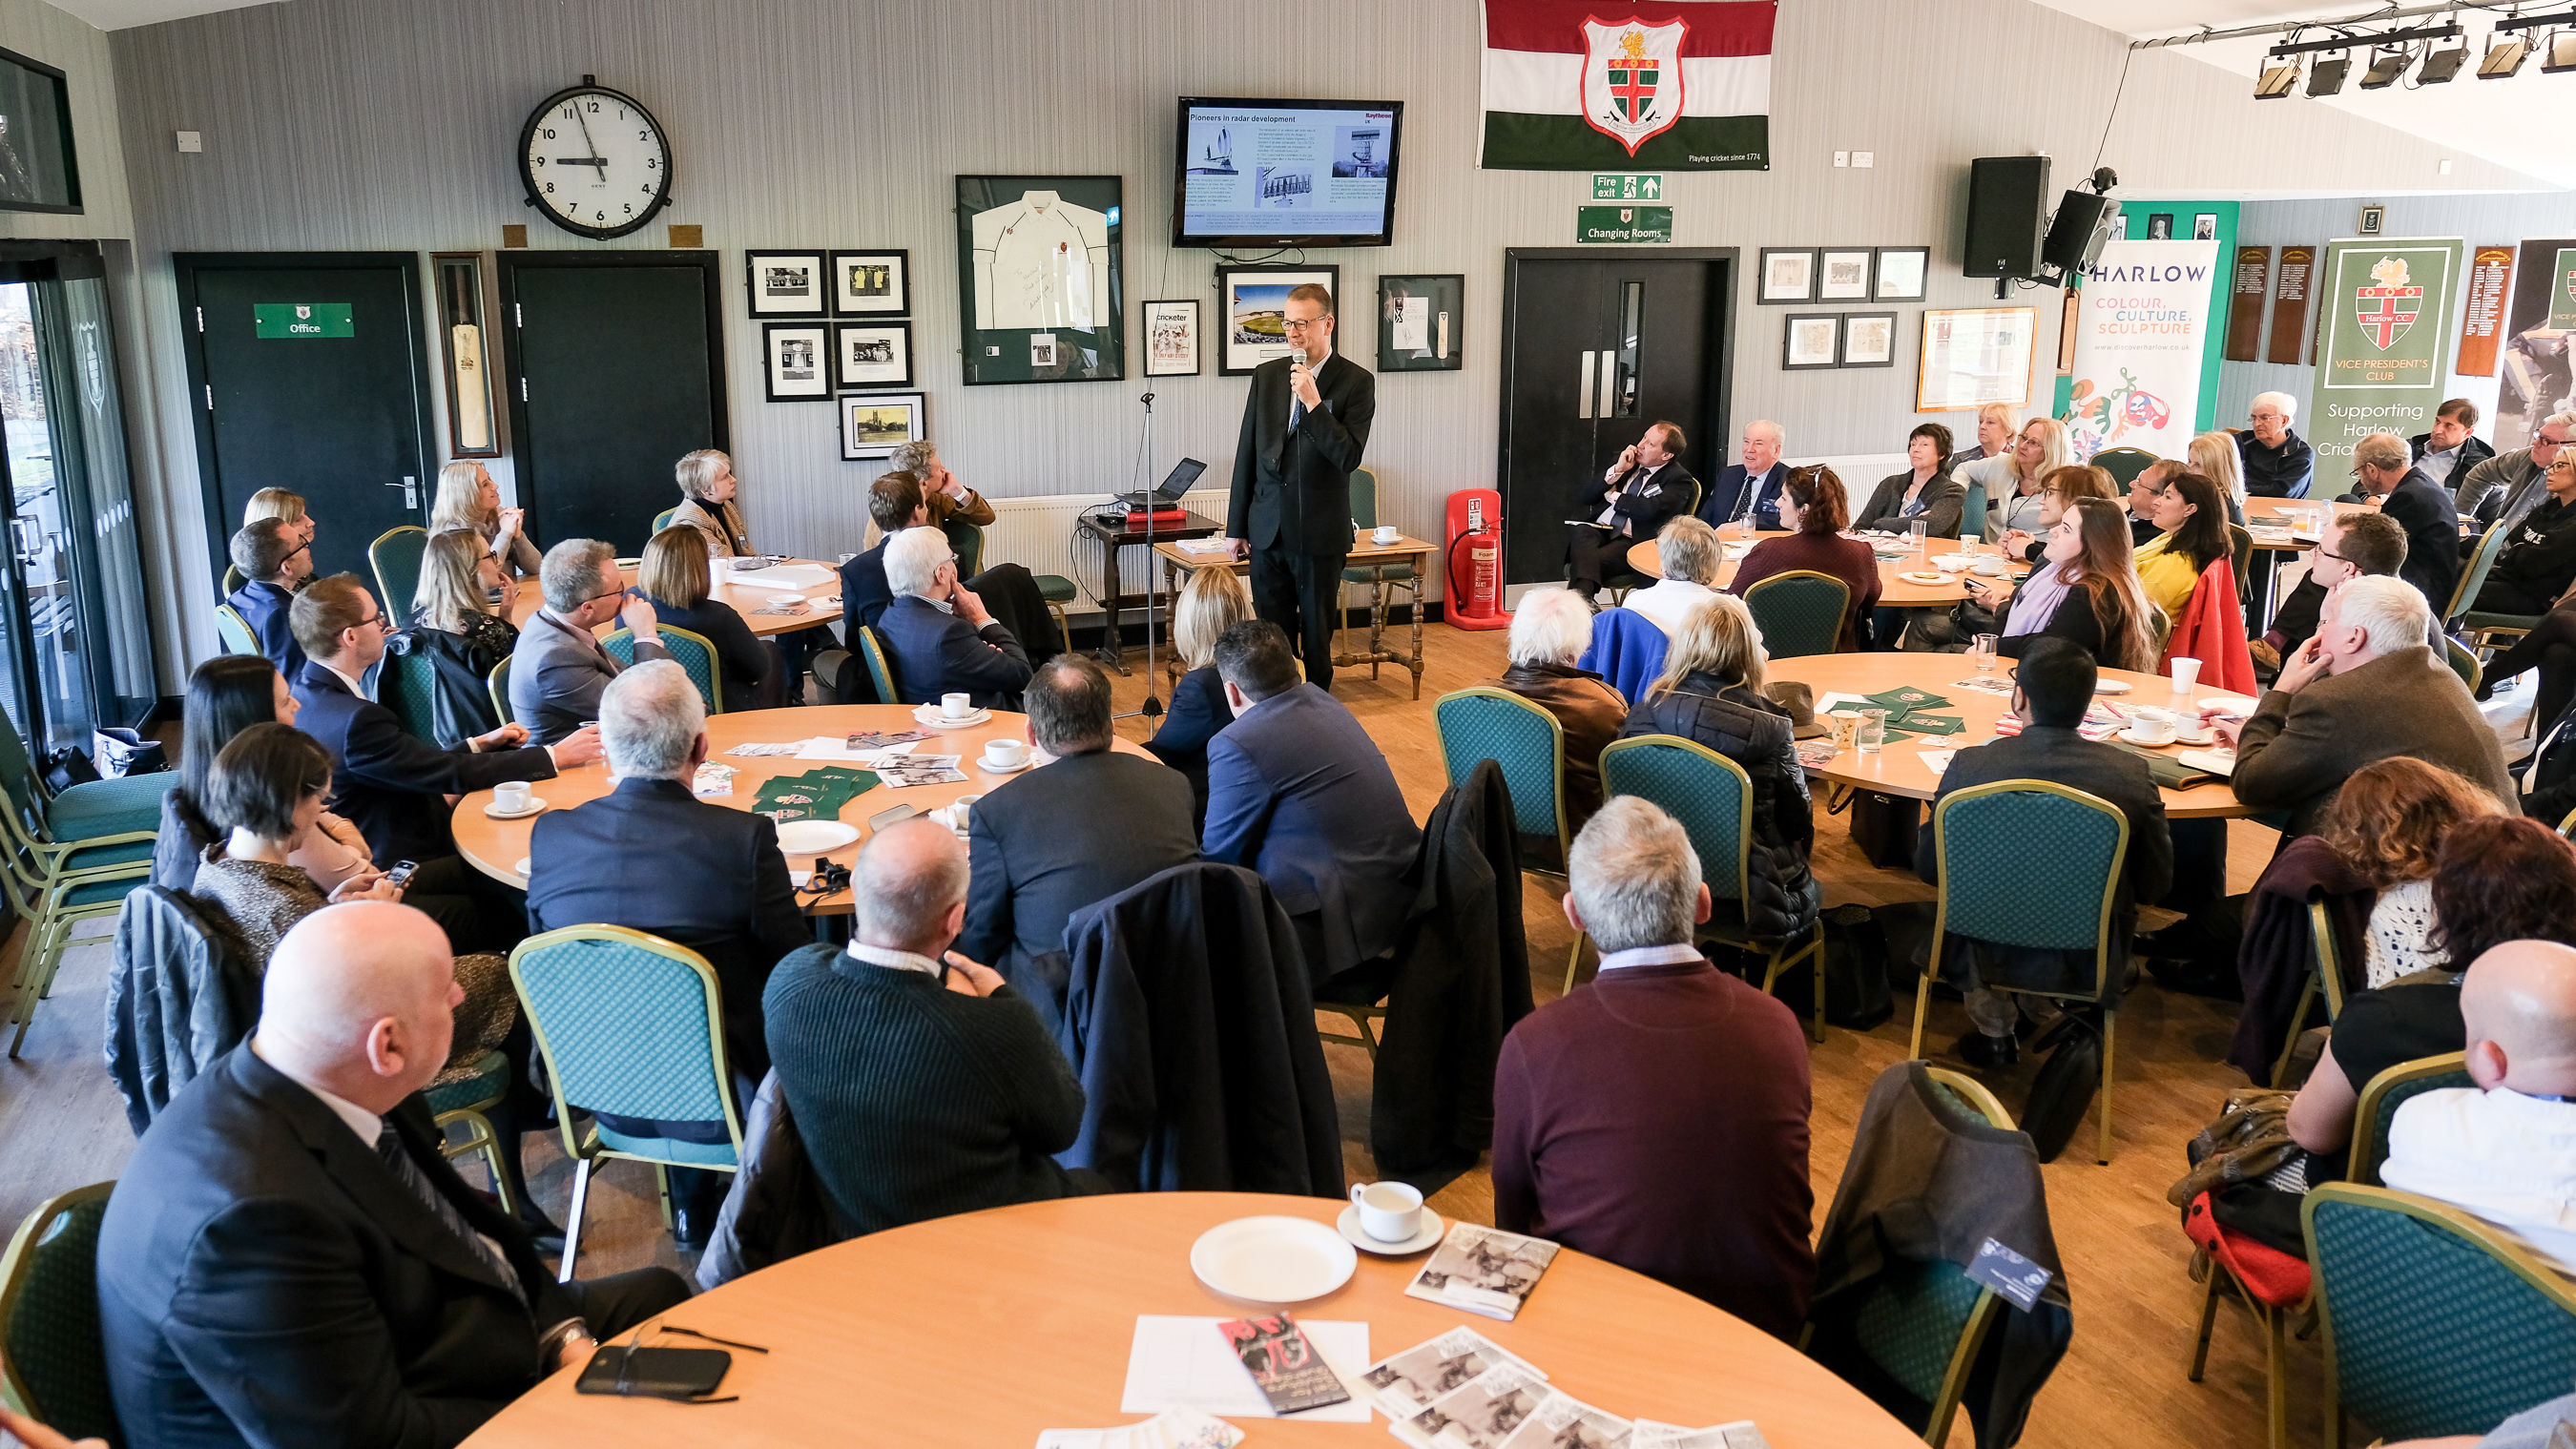 Discover Harlow Ambassador Meeting at Harlow Cricket Club